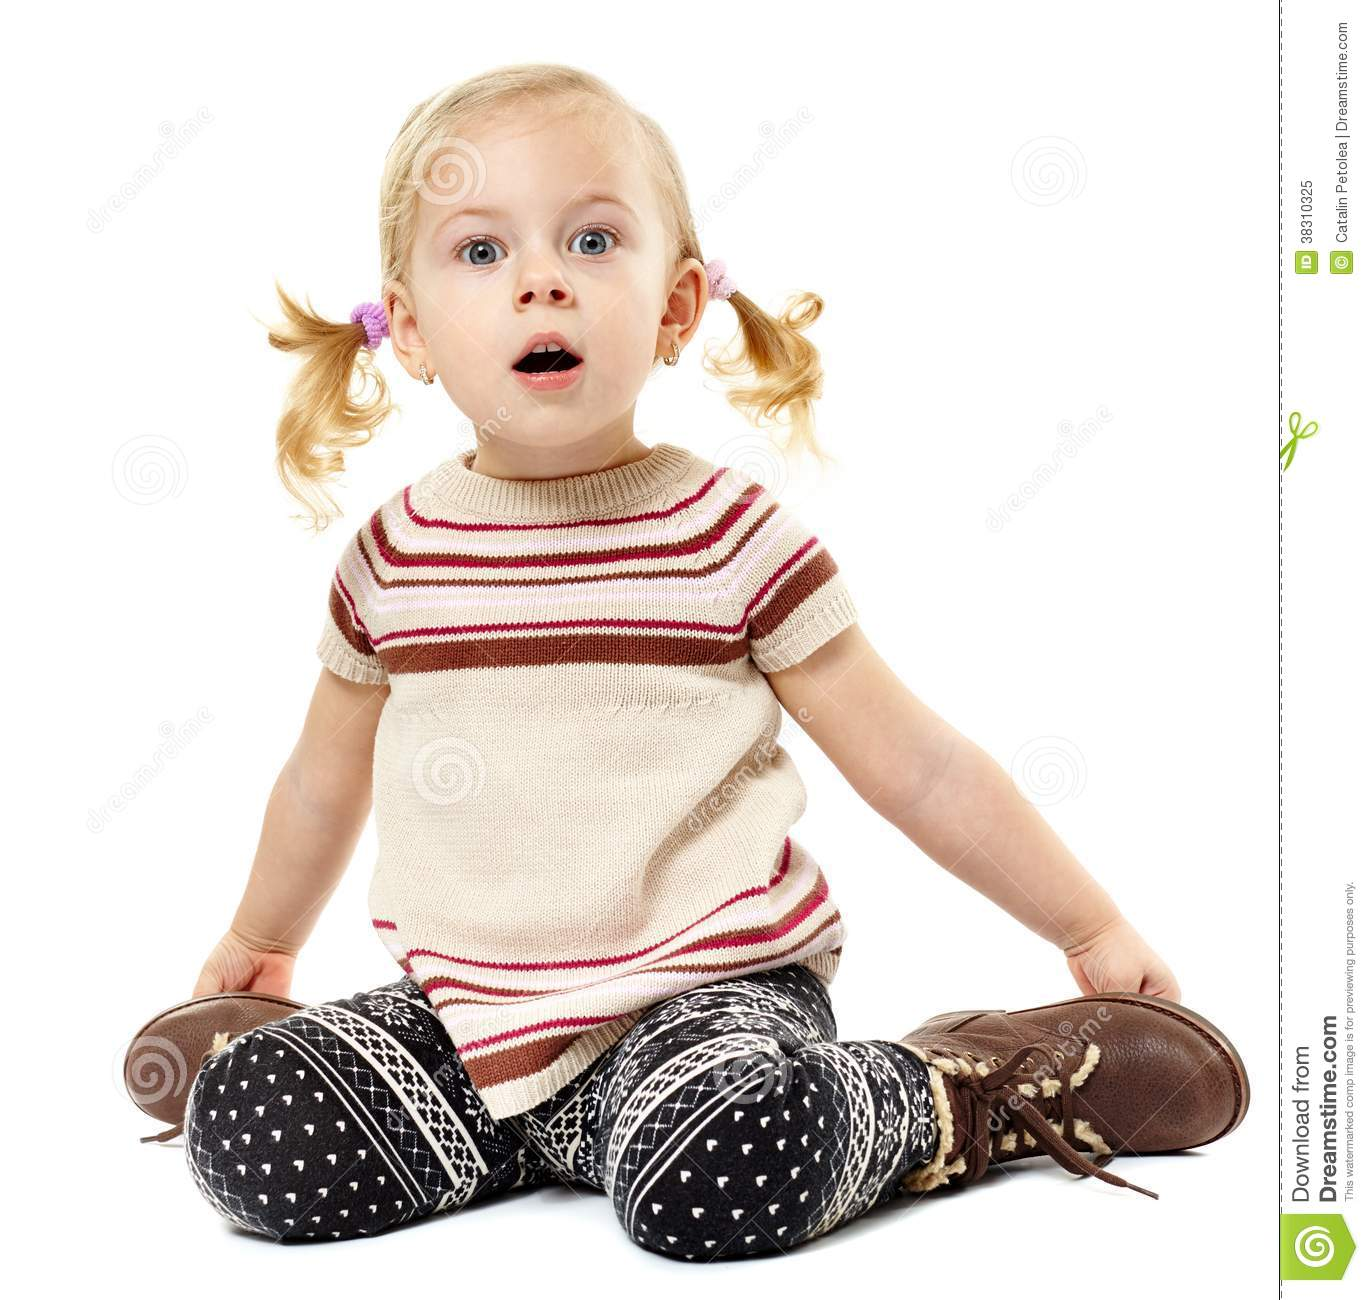 Toddler girl sitting on the floor and expressing surprise royalty free